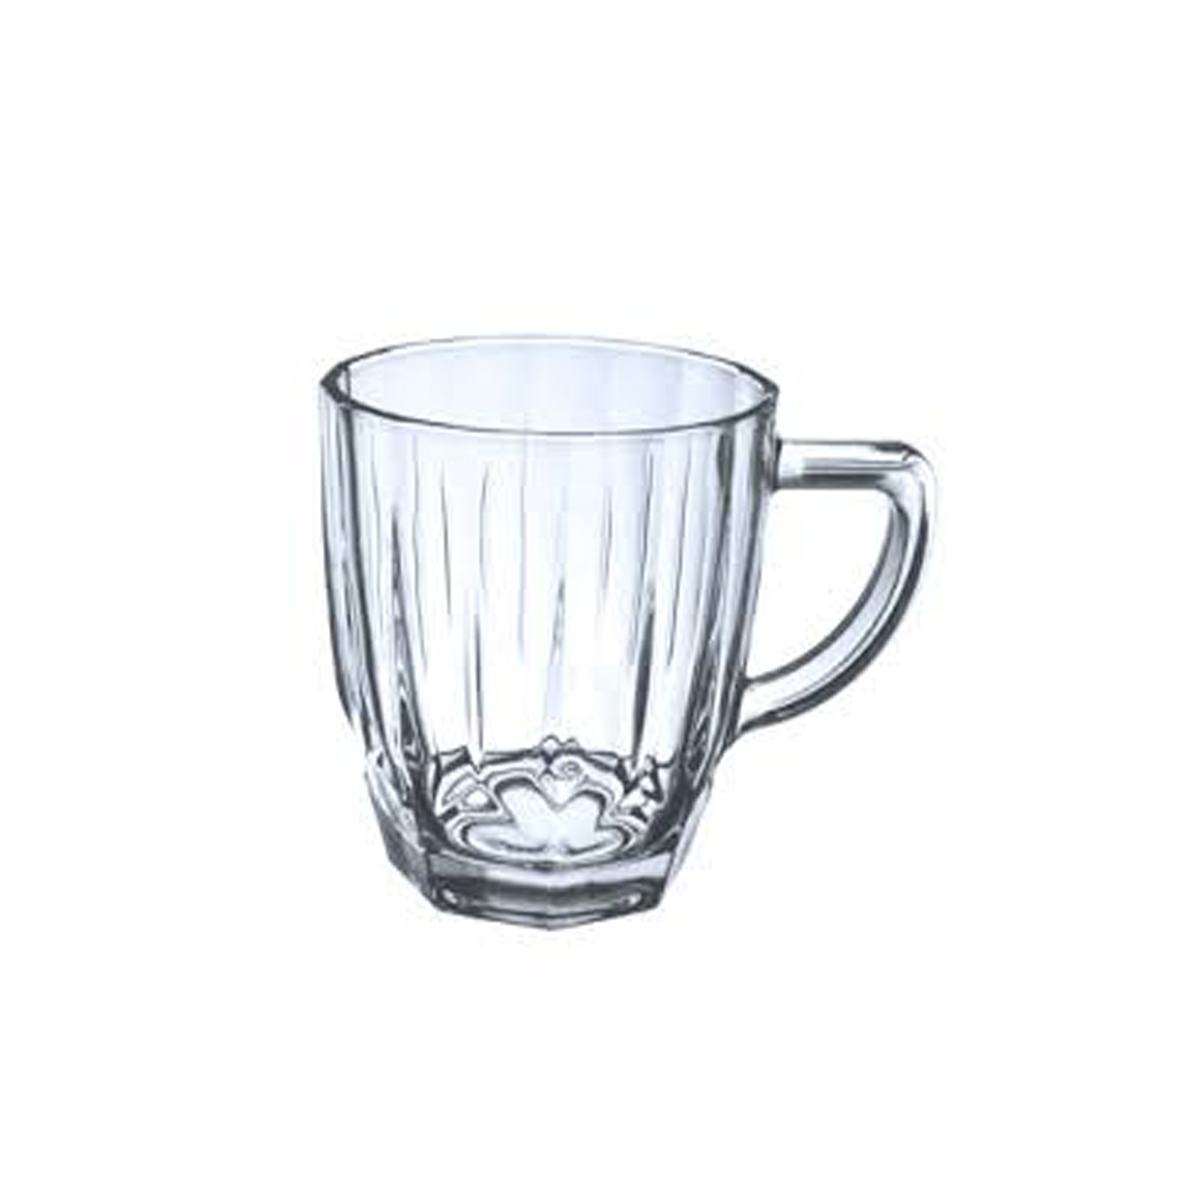 Glass Vintage Tea Mug 190 ML